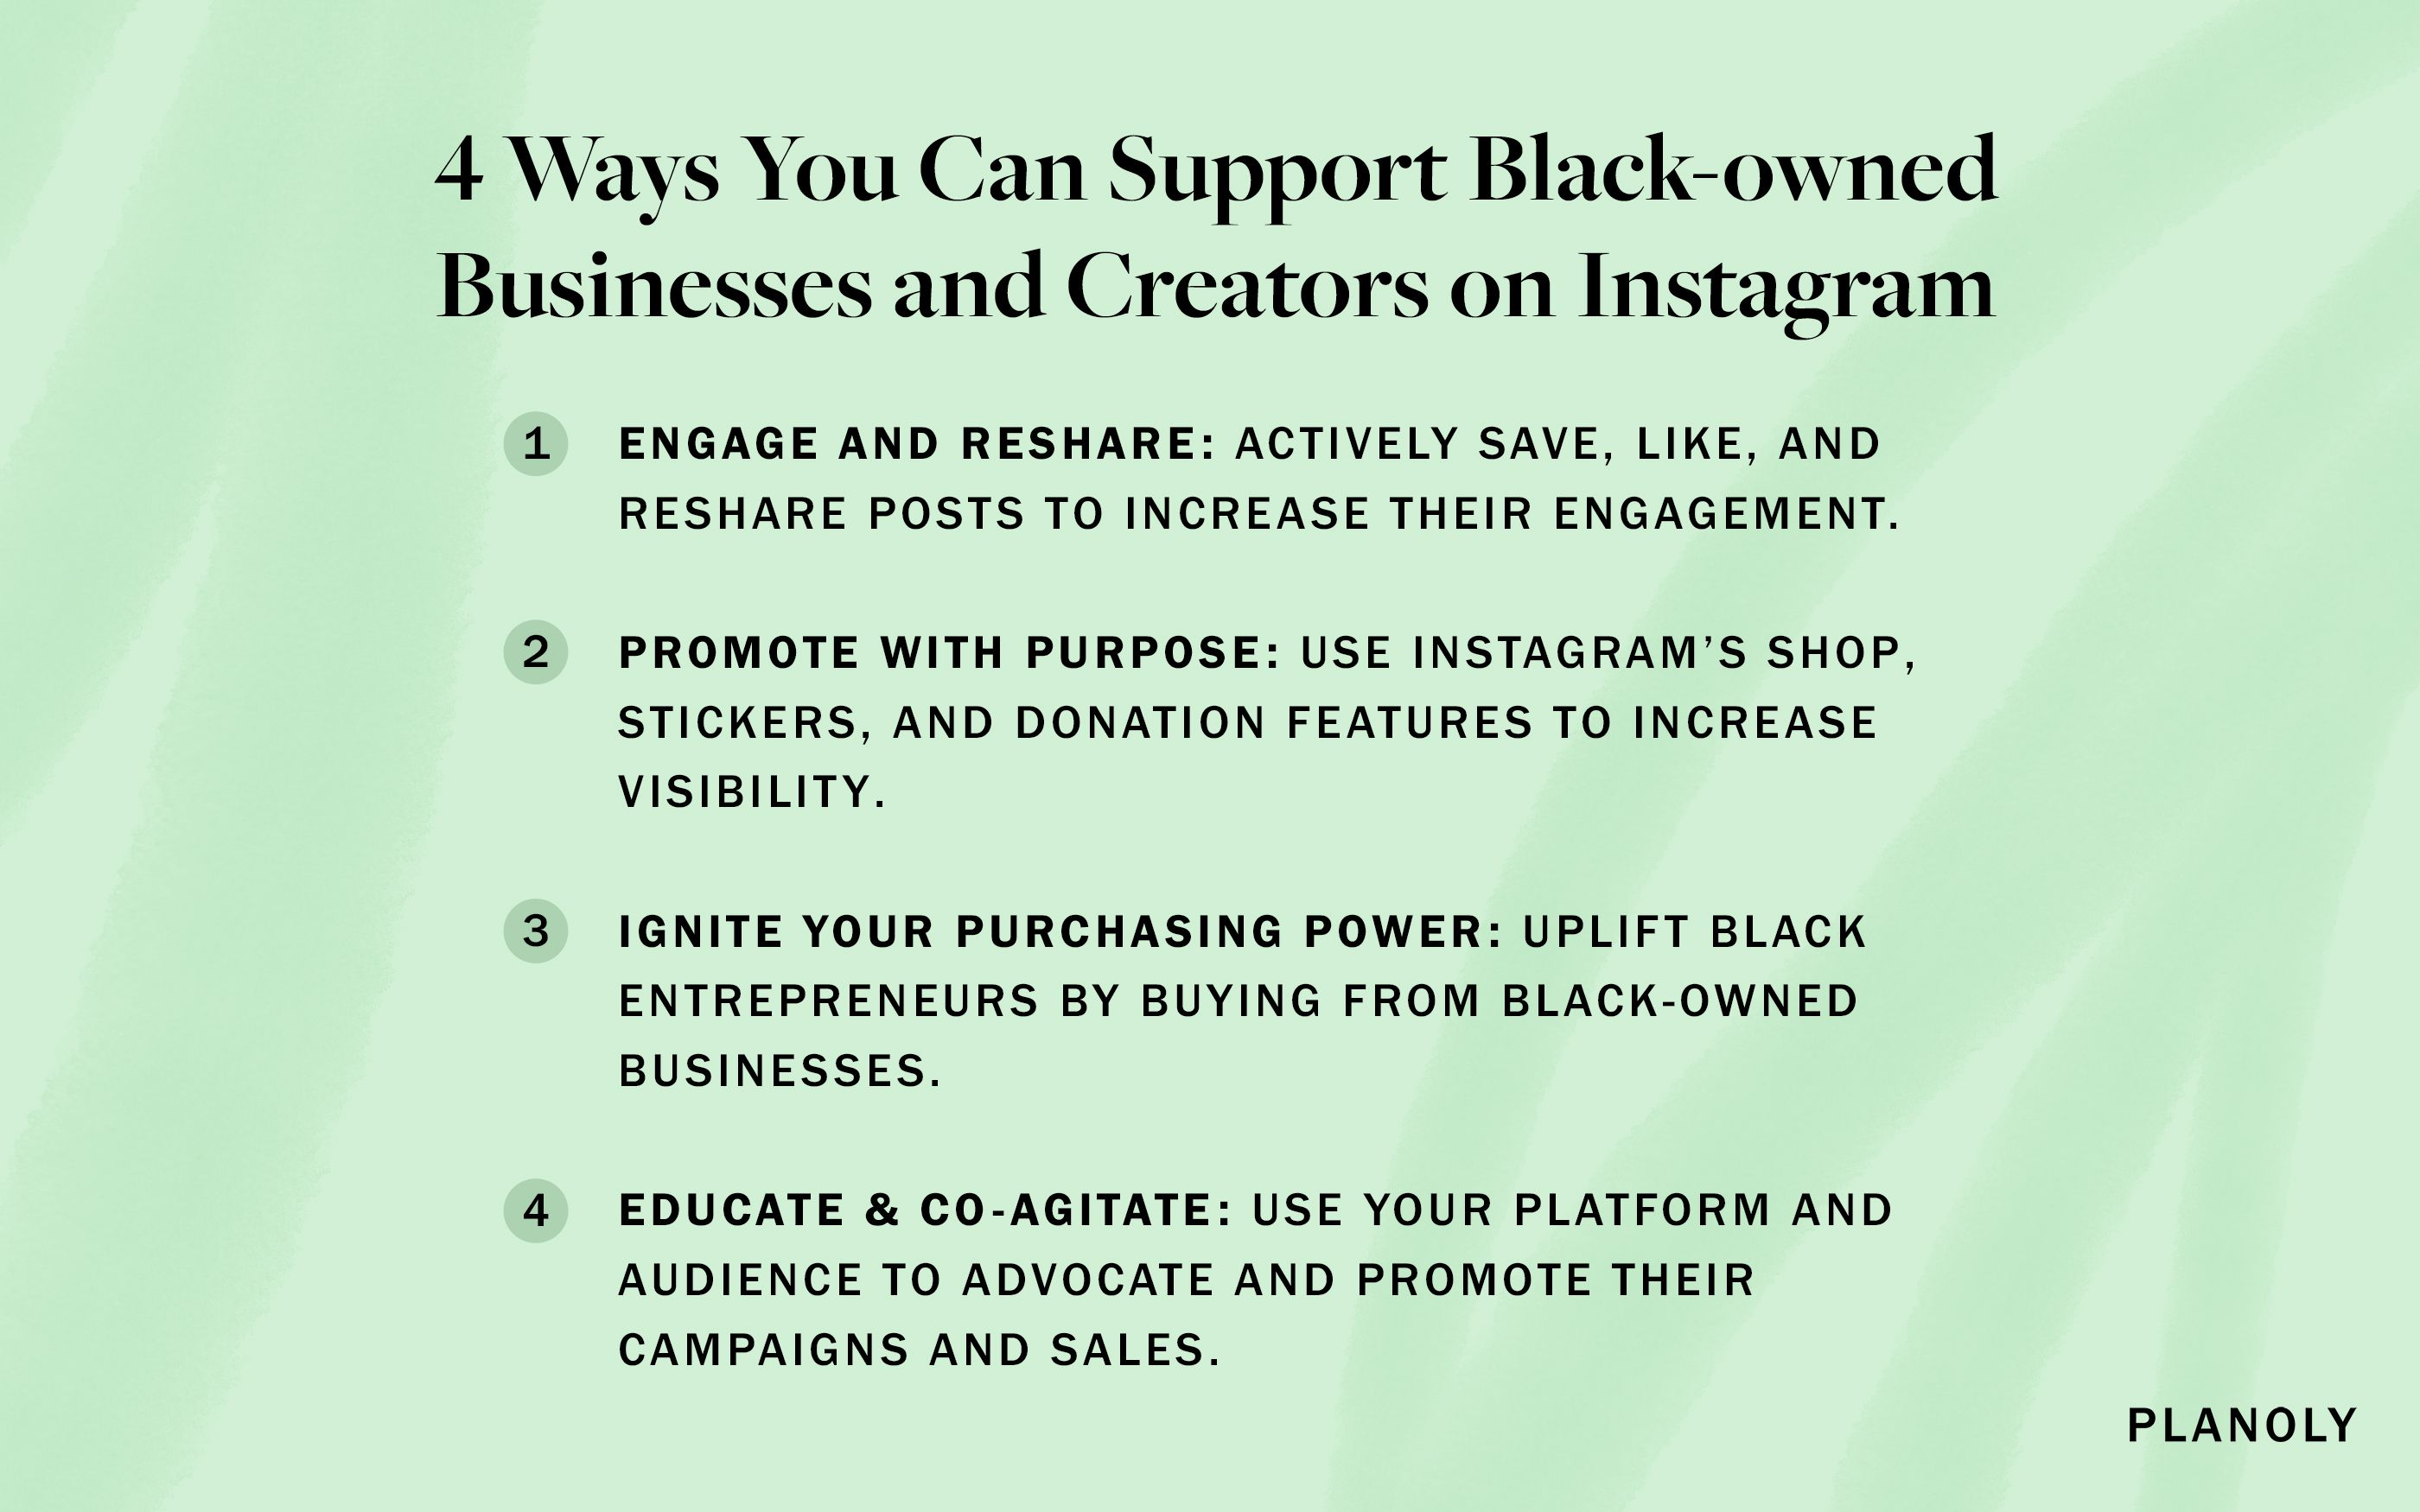 PLANOLY - Blog Post - How to Support Black Businesses - Image 1